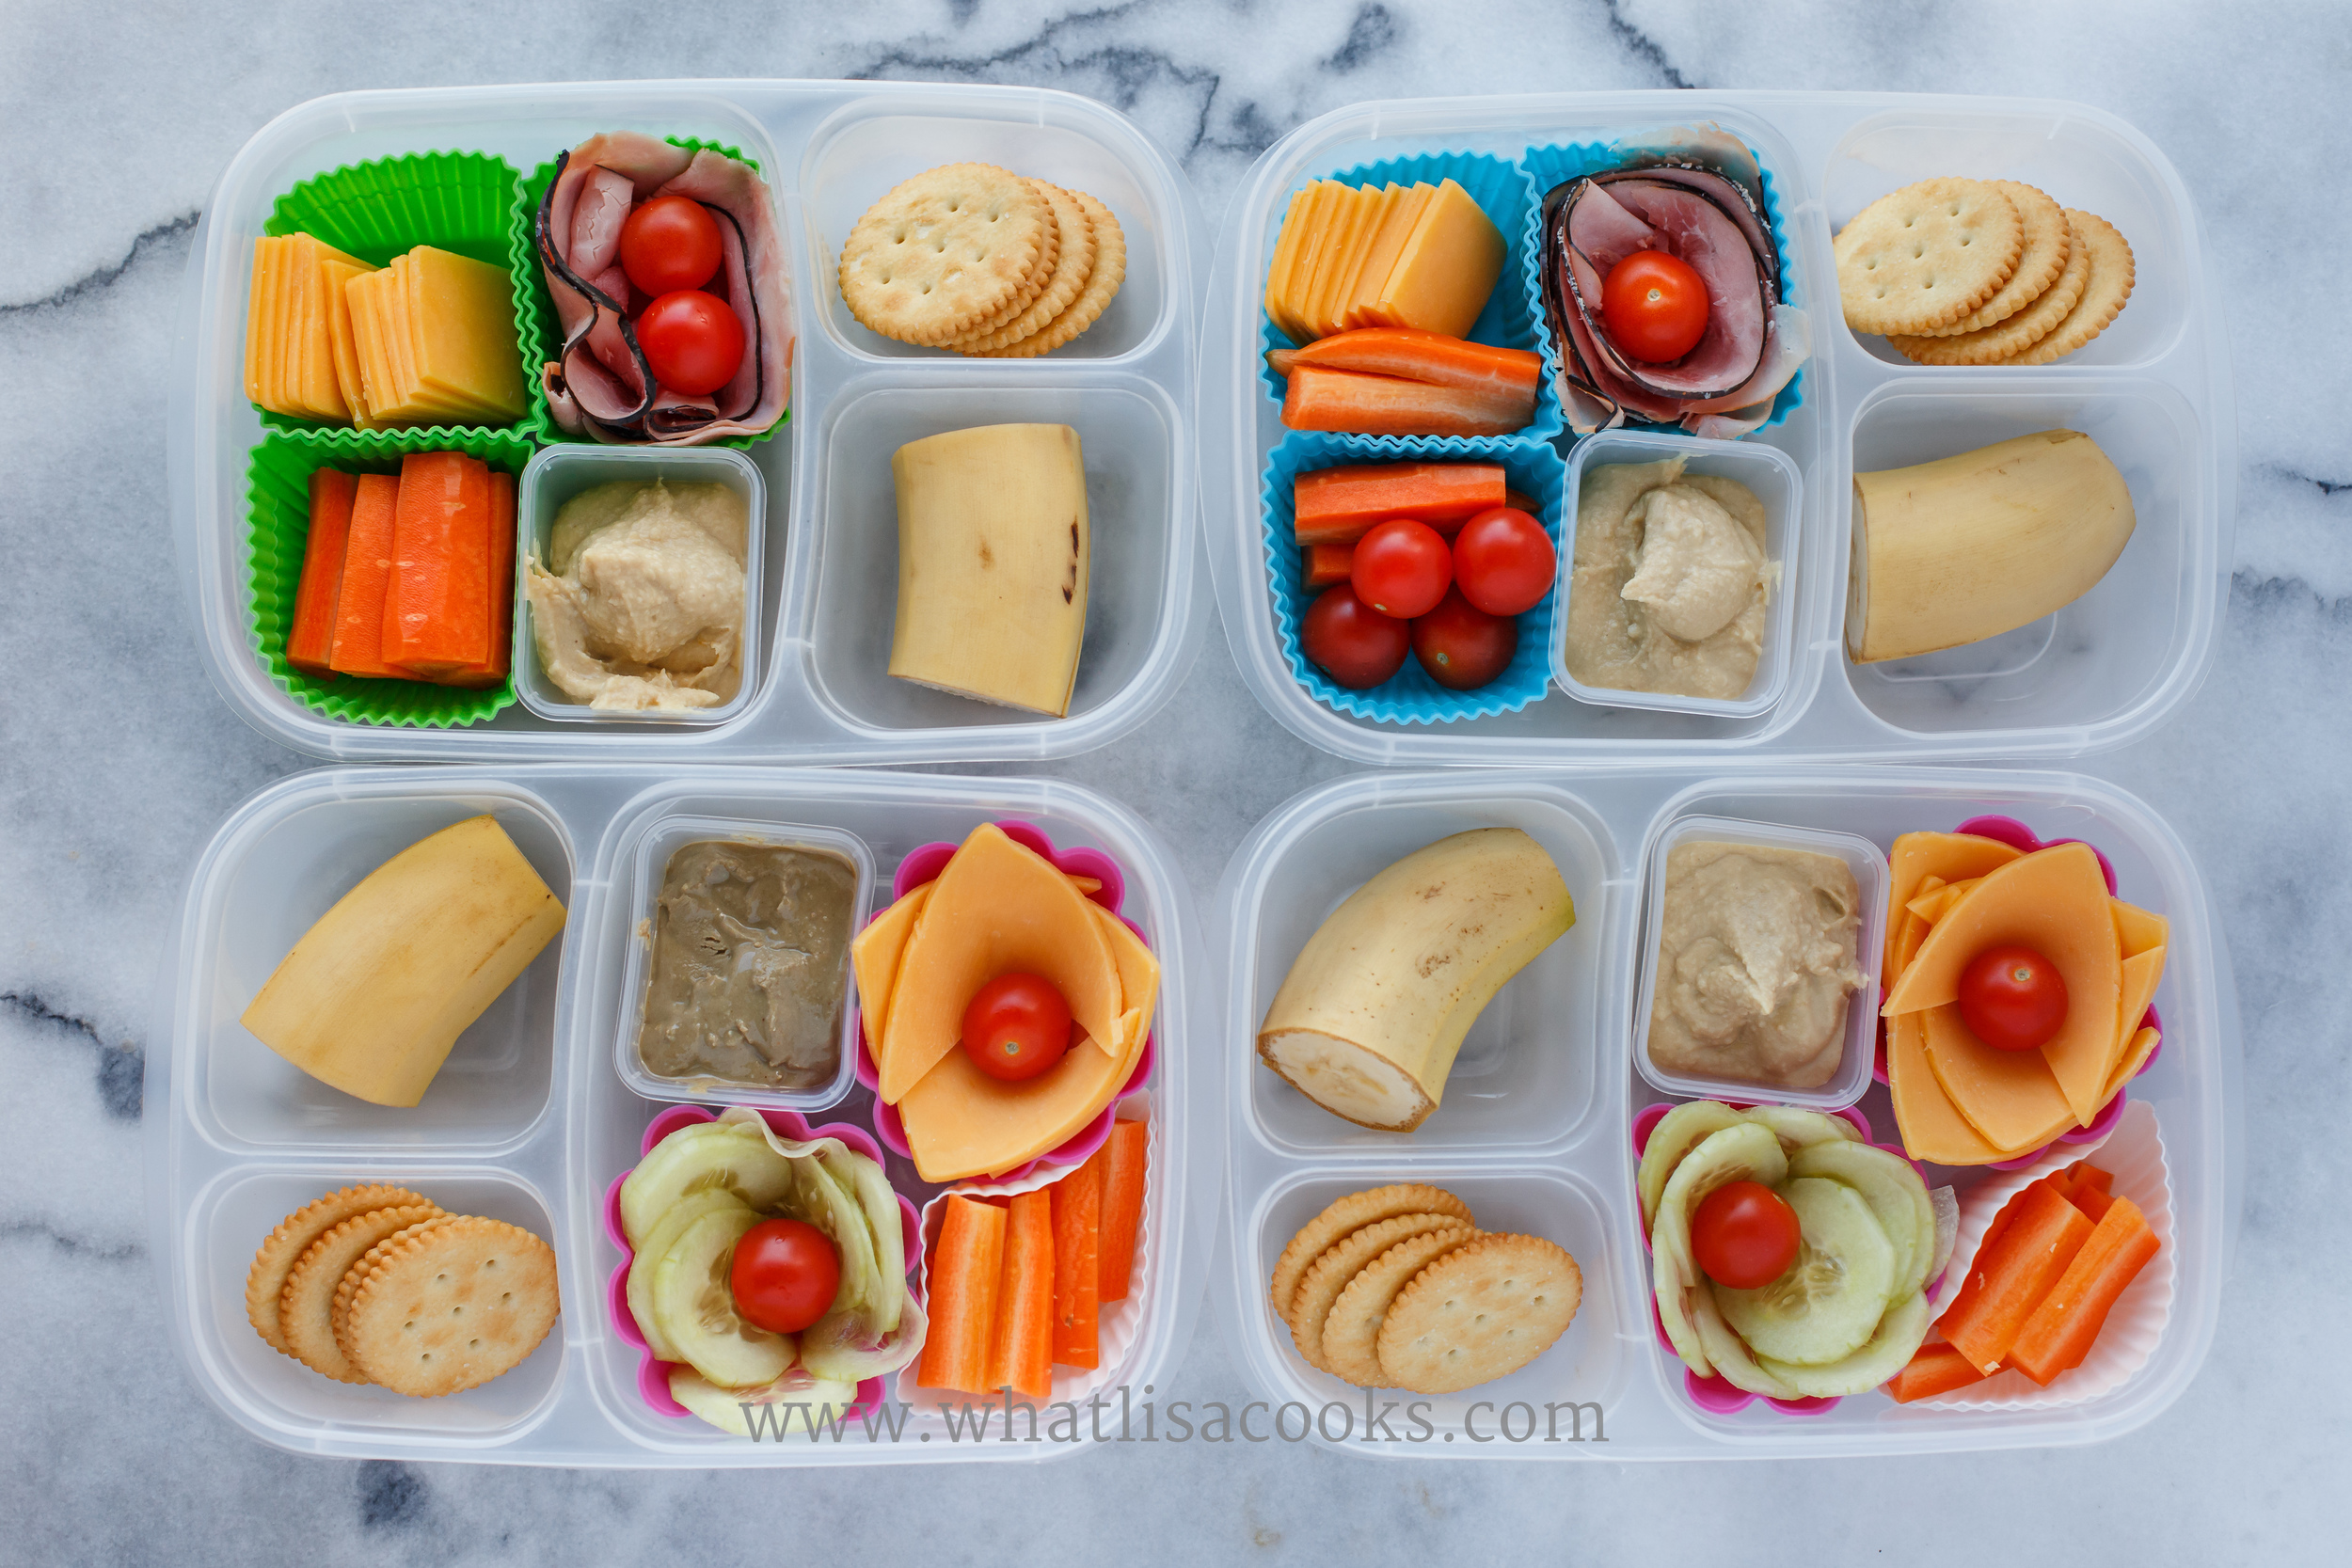 Two of these have cheese, ham, hummus, carrots, tomato and banana. One has the same but cucumbers instead of ham. The fourth has the same as that but swapped out sunbutter for the hummus. Serve with gluten free crackers.